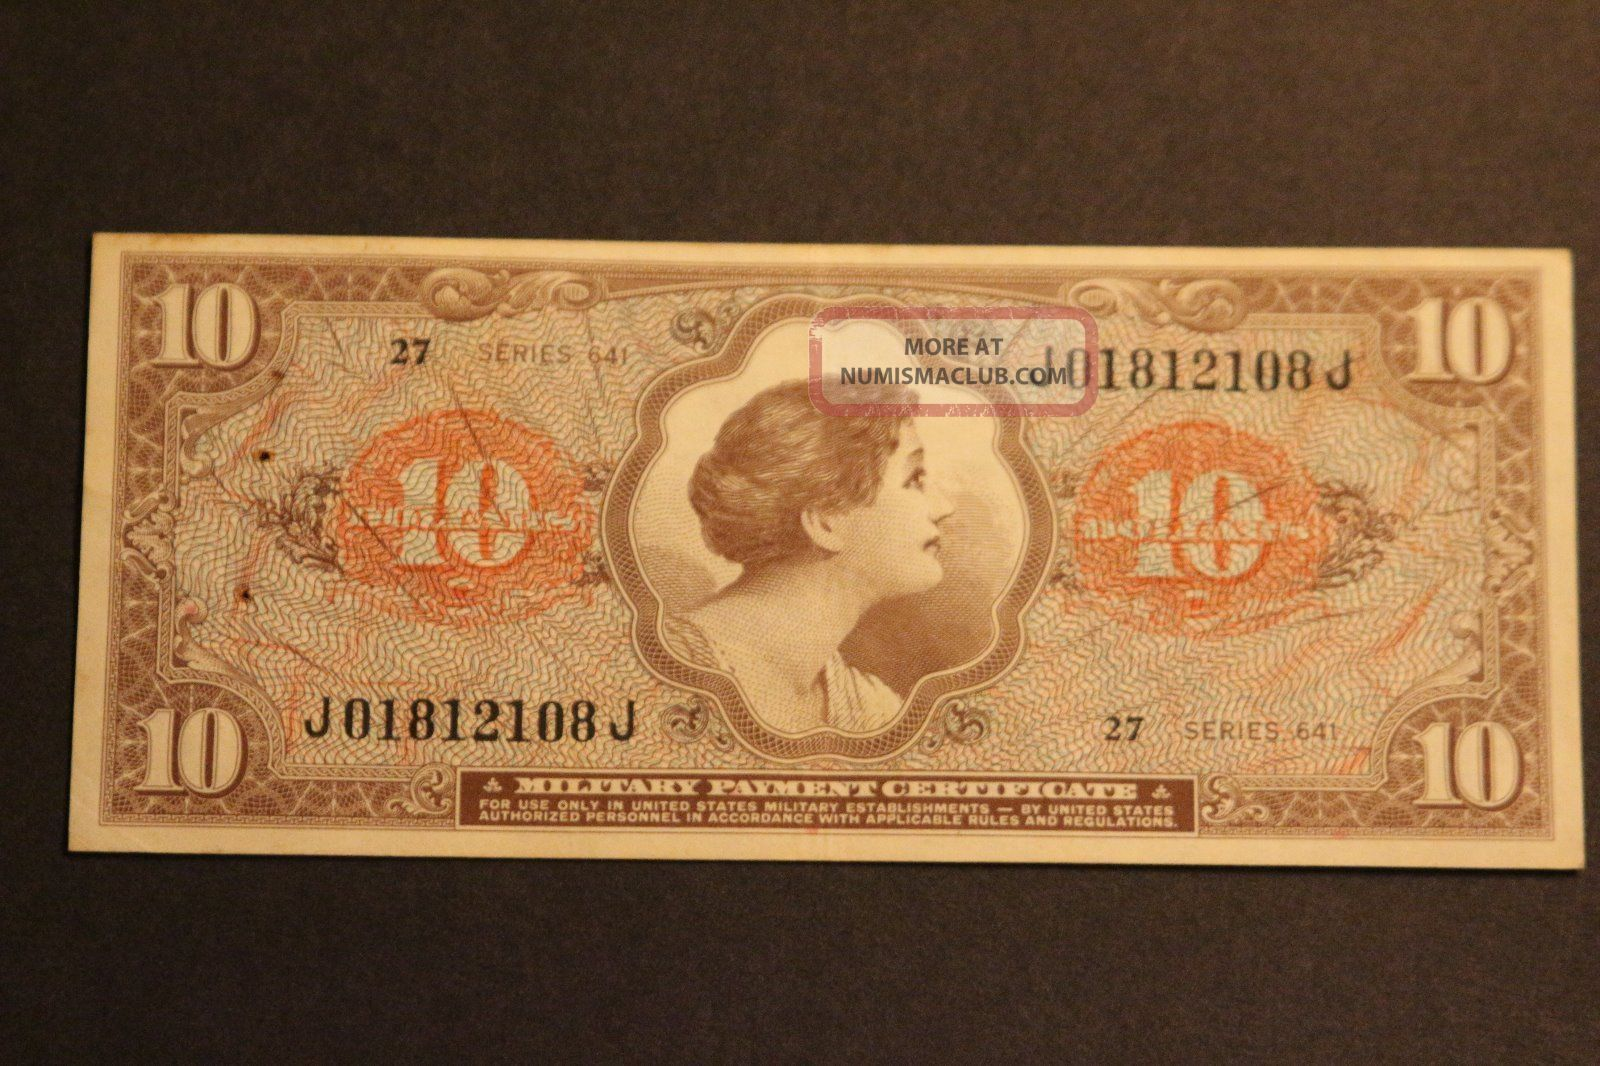 Us Ten Dollers Military Payment Certificate Series 641 Xf Circulated Note Paper Money: US photo